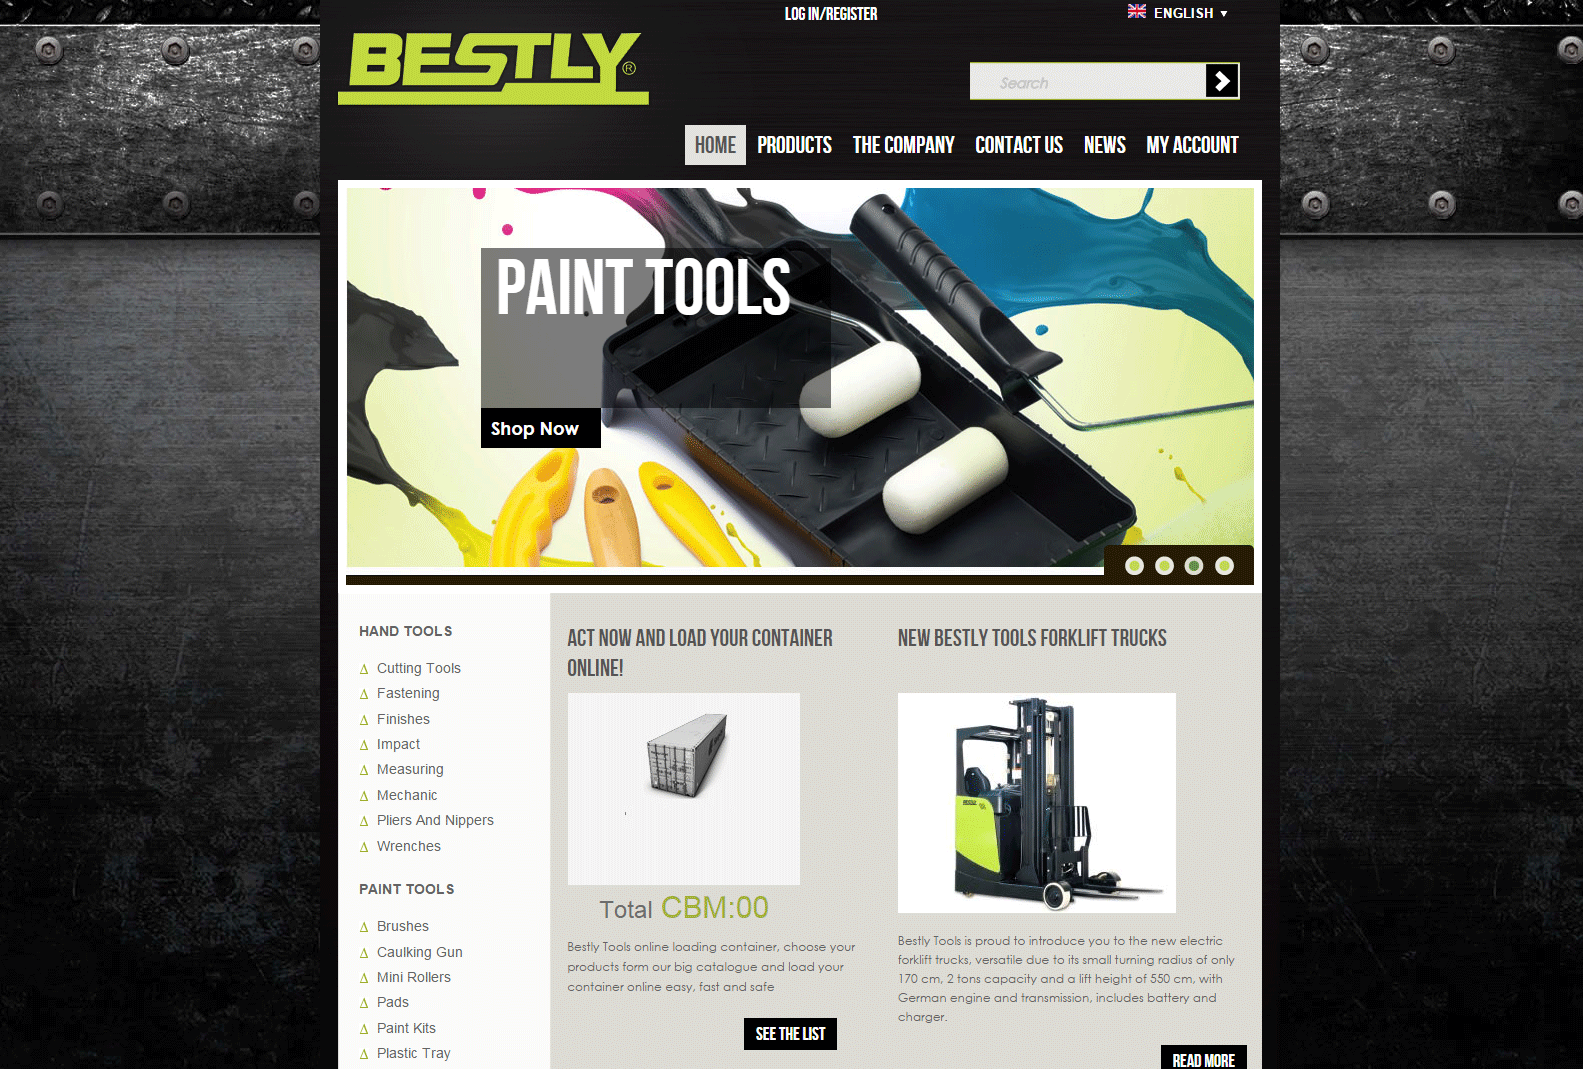 Bestly Tools-Hand Tools